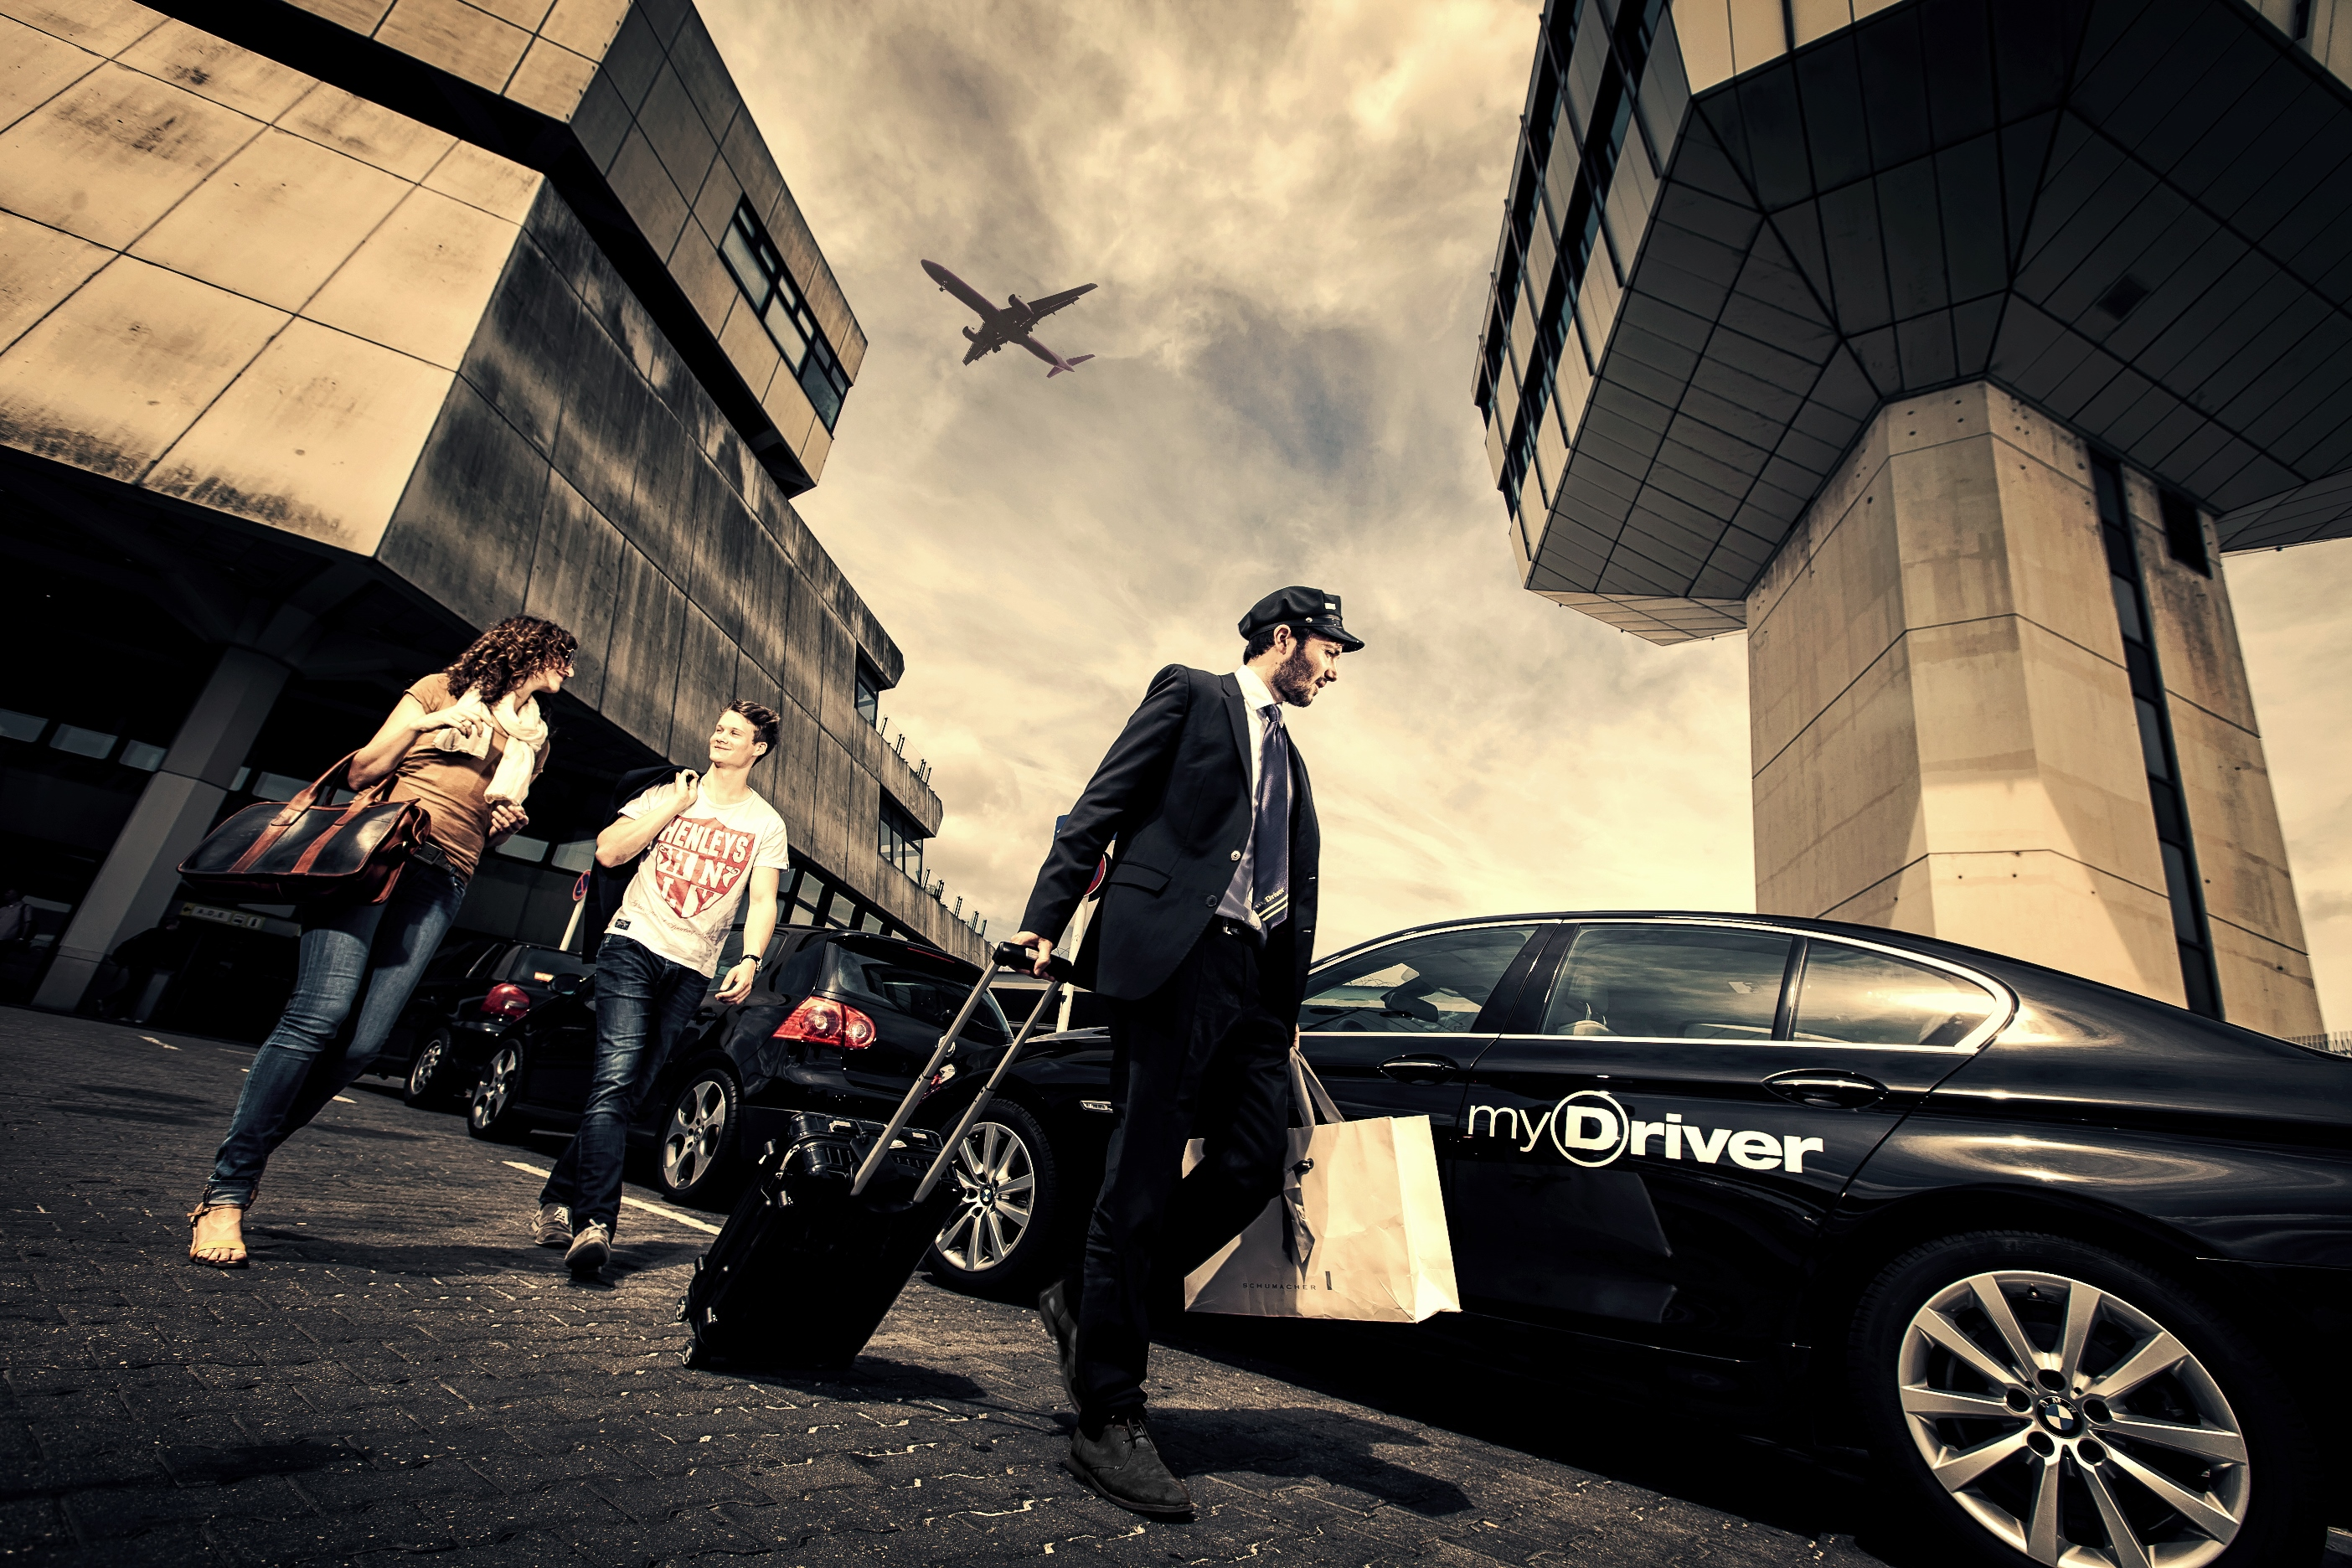 myDriver Picture by DavidUlrich- 4